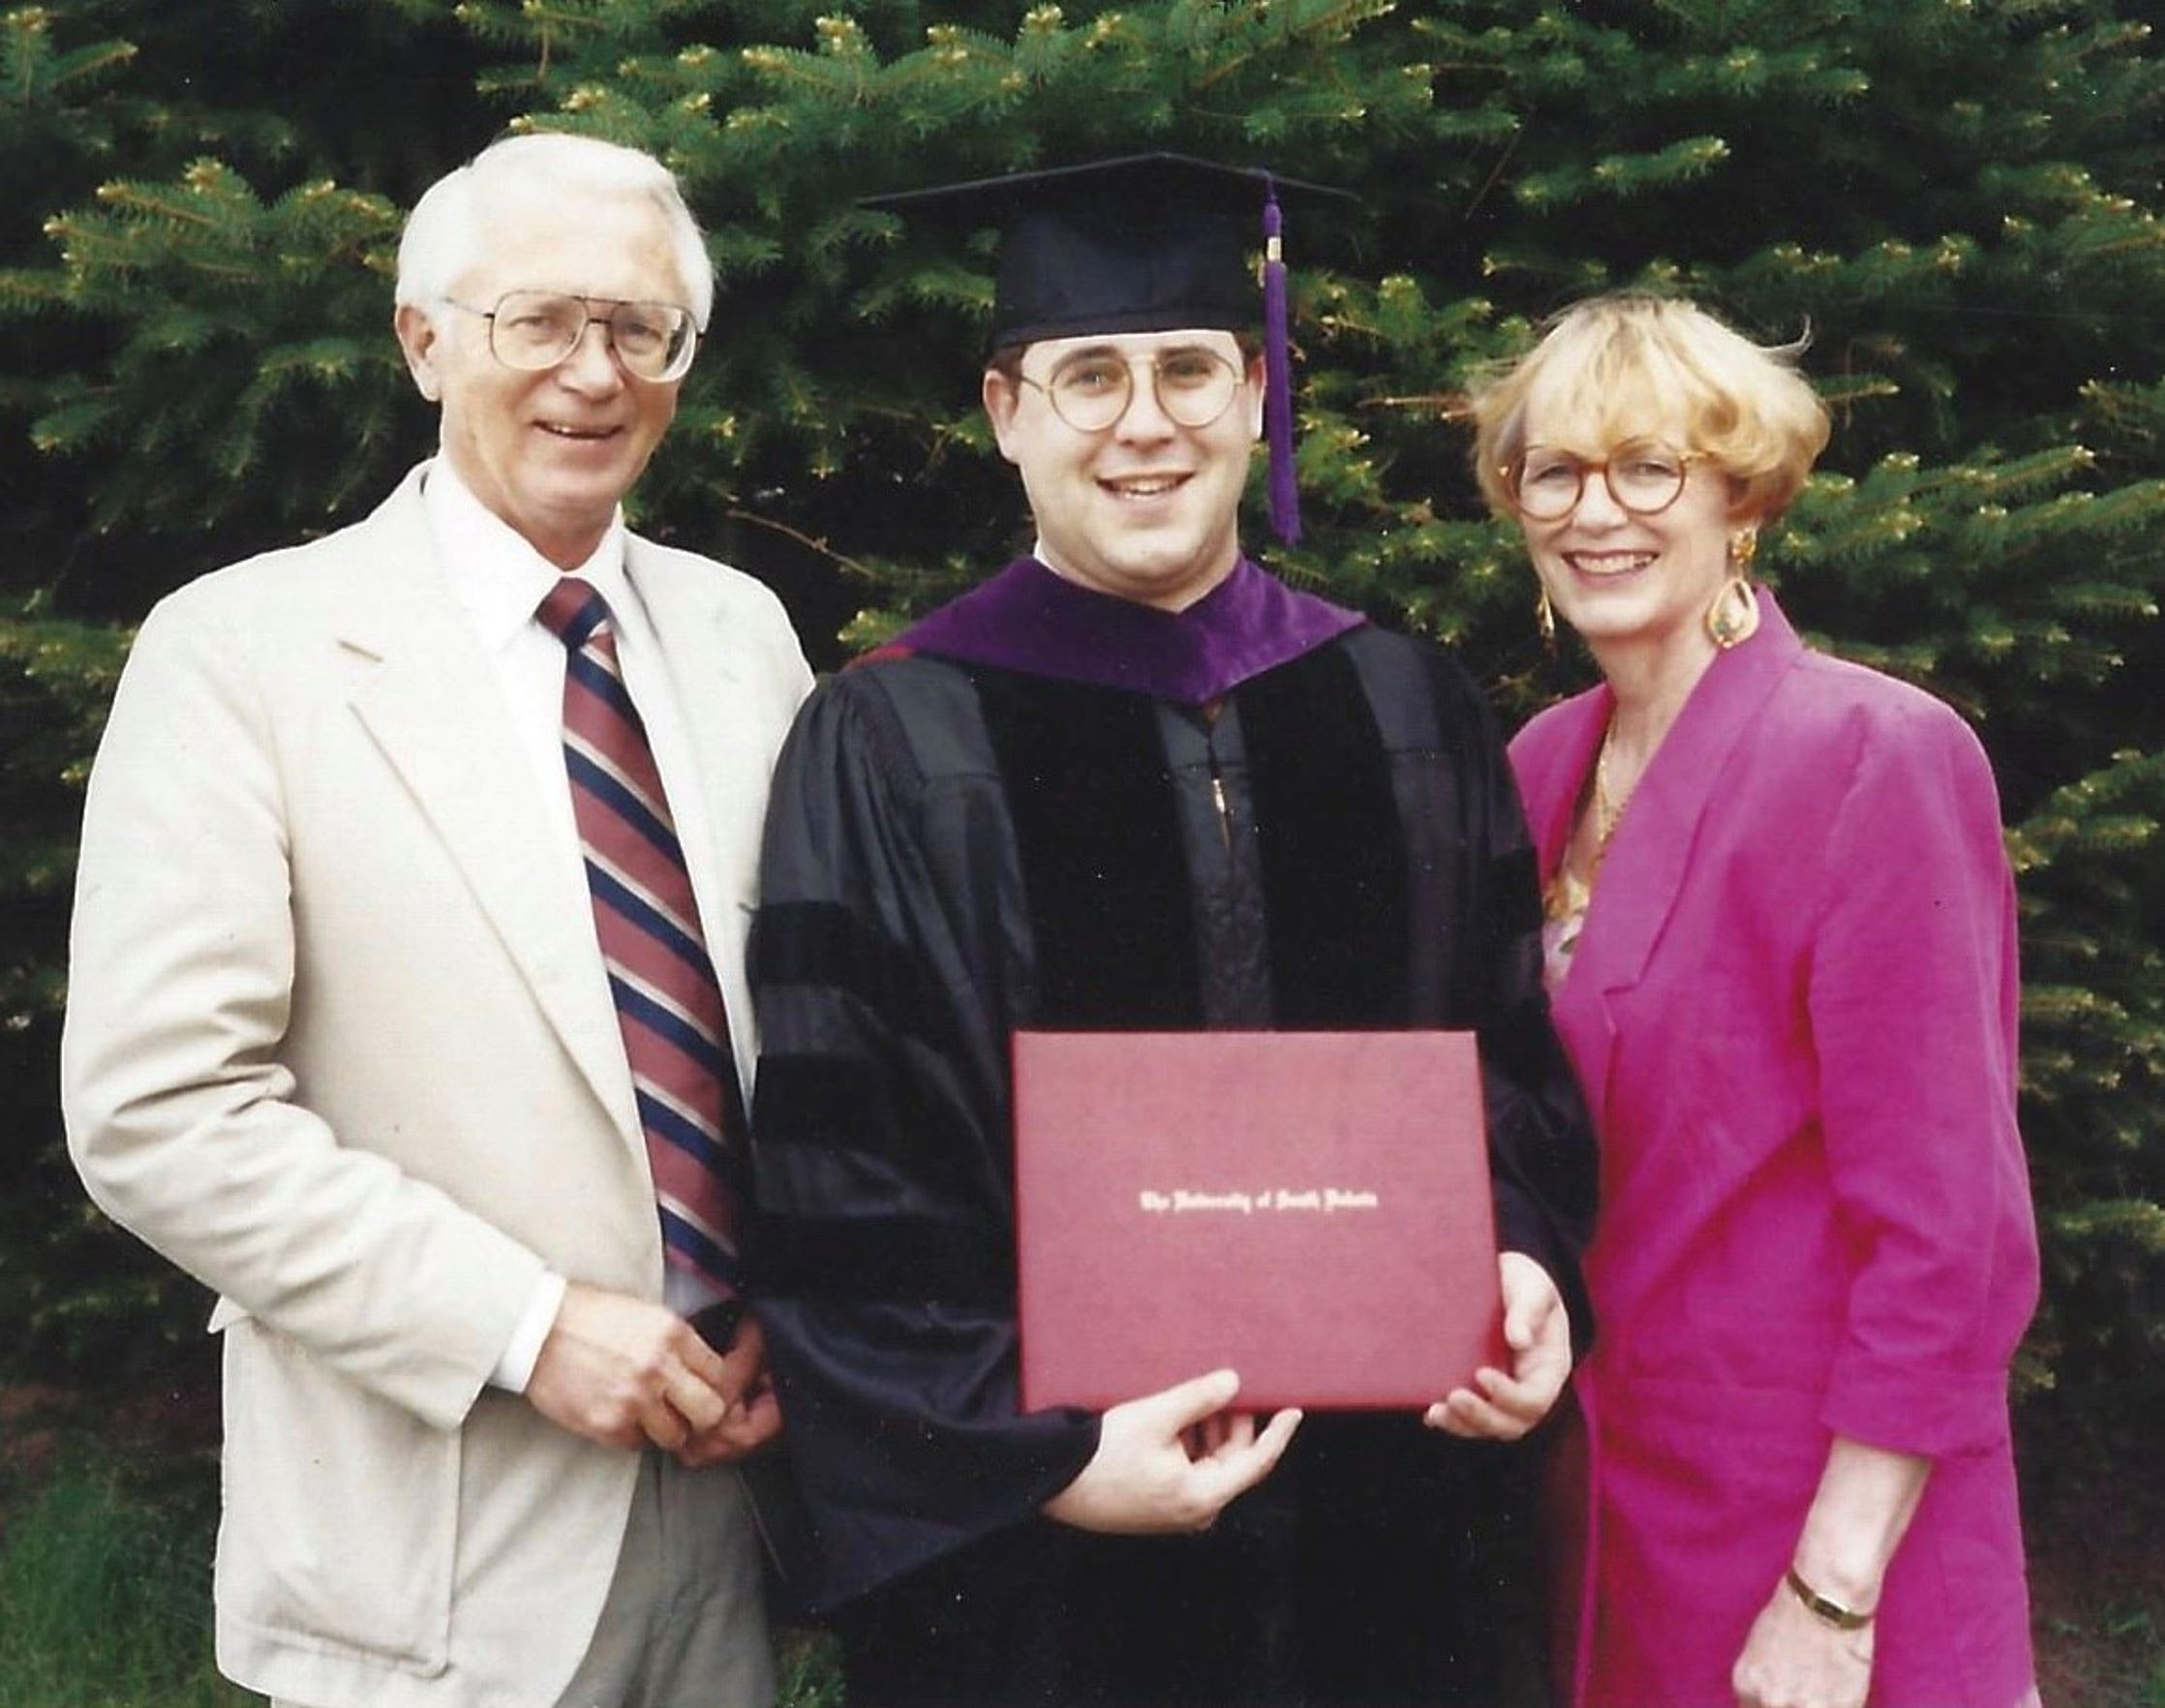 Jason Harris graduated from law school at USD in 1993, surrounded by his adoptive parents Russell and Mary Anne.